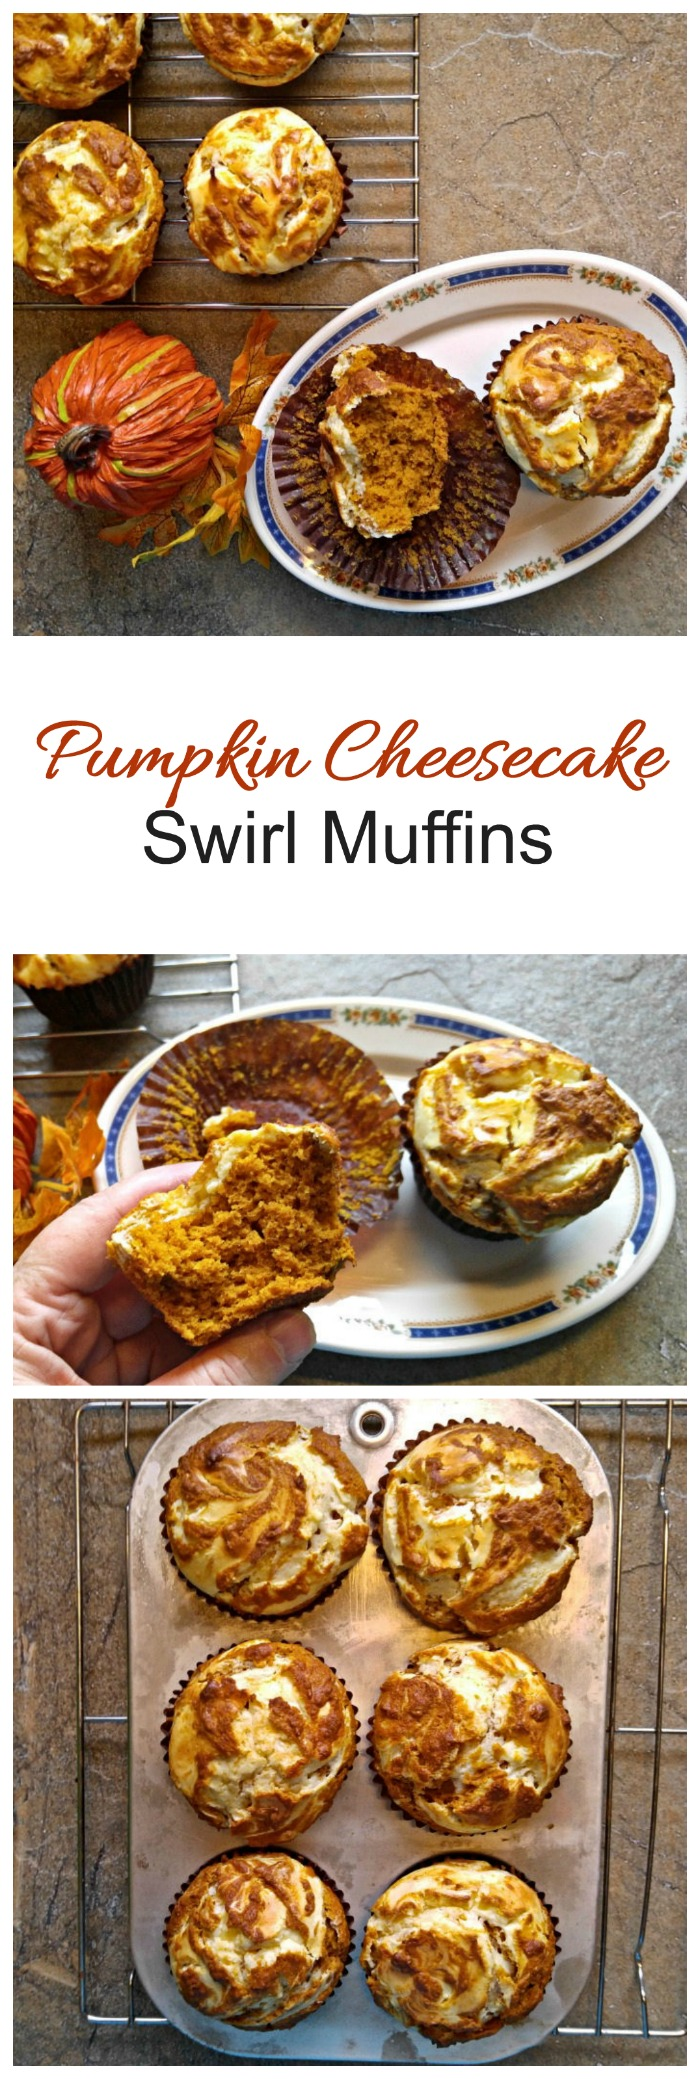 These pumpkin cheesecake muffins have a cream cheese swirled topping. #nationalpumpkinday #pumpkinmuffins